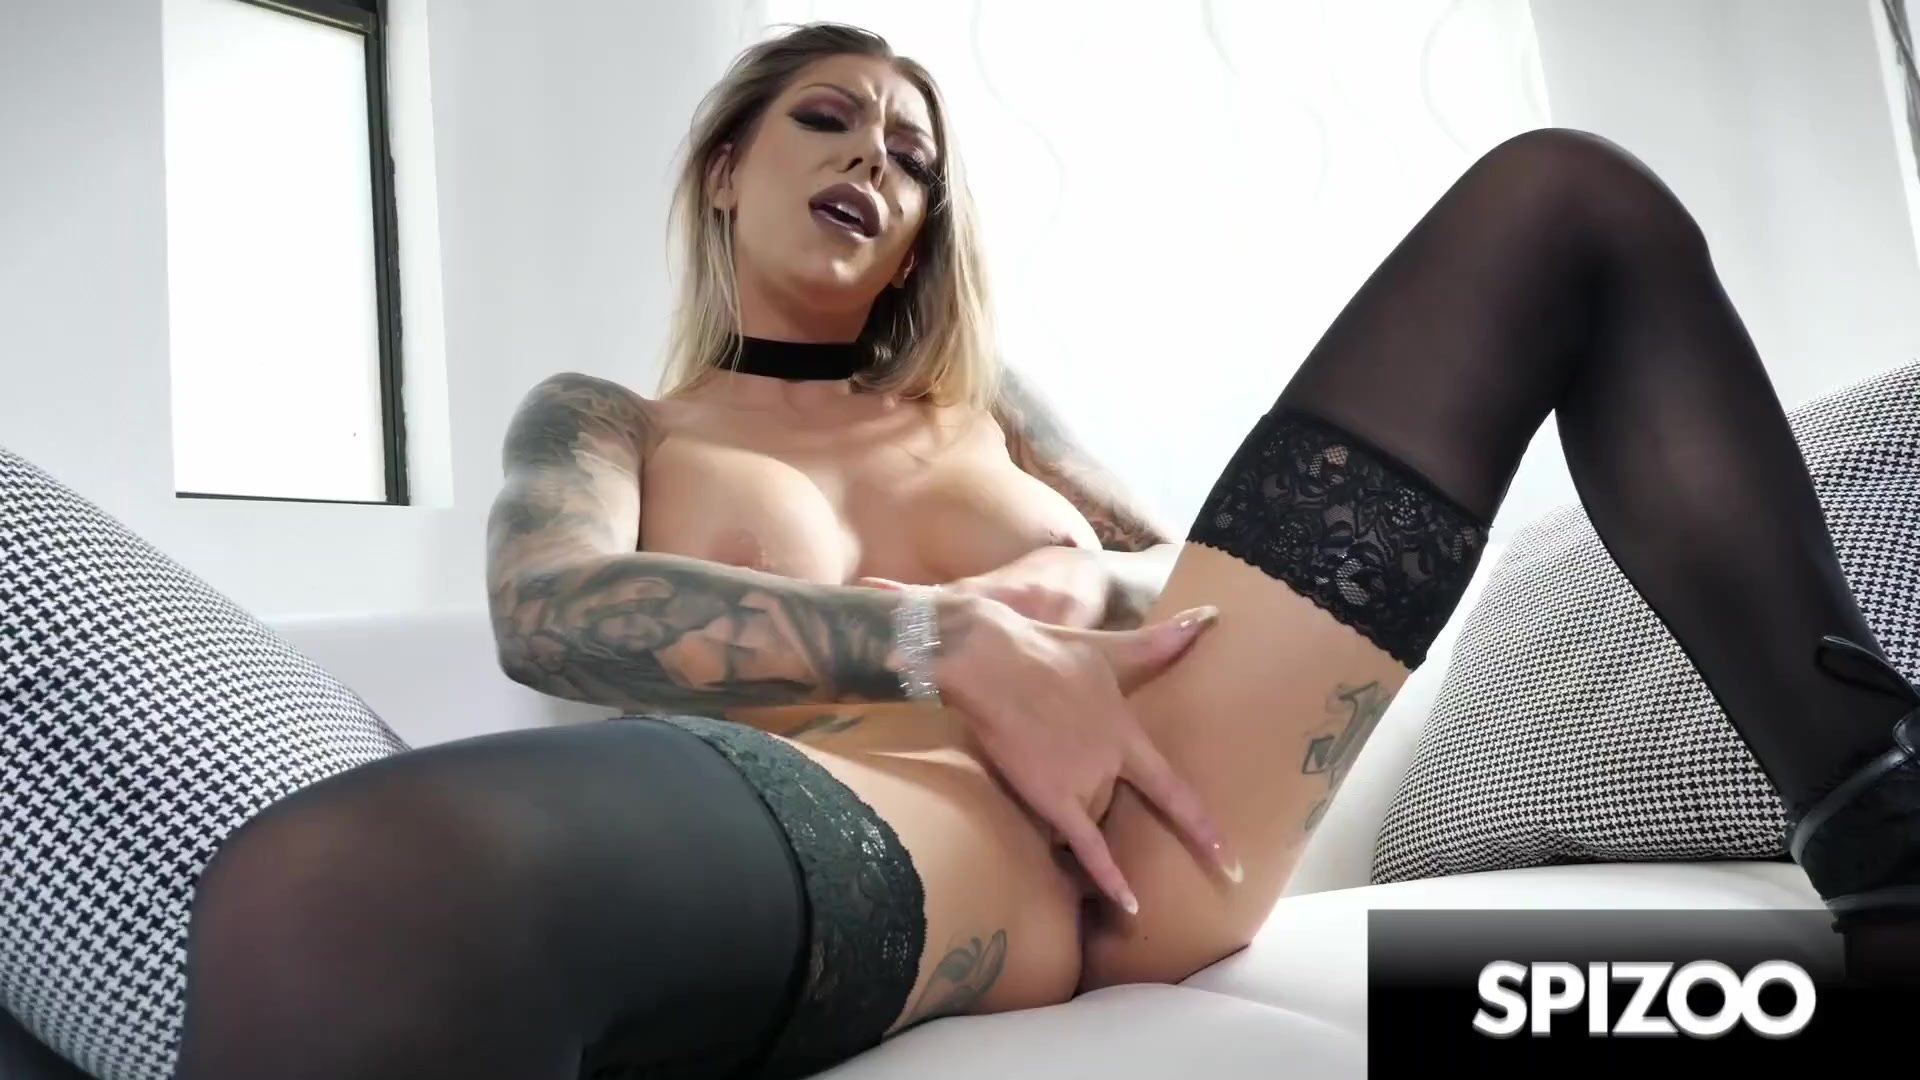 Stunning Karma Rx in Sexy Black Lingerie Masturbating for You